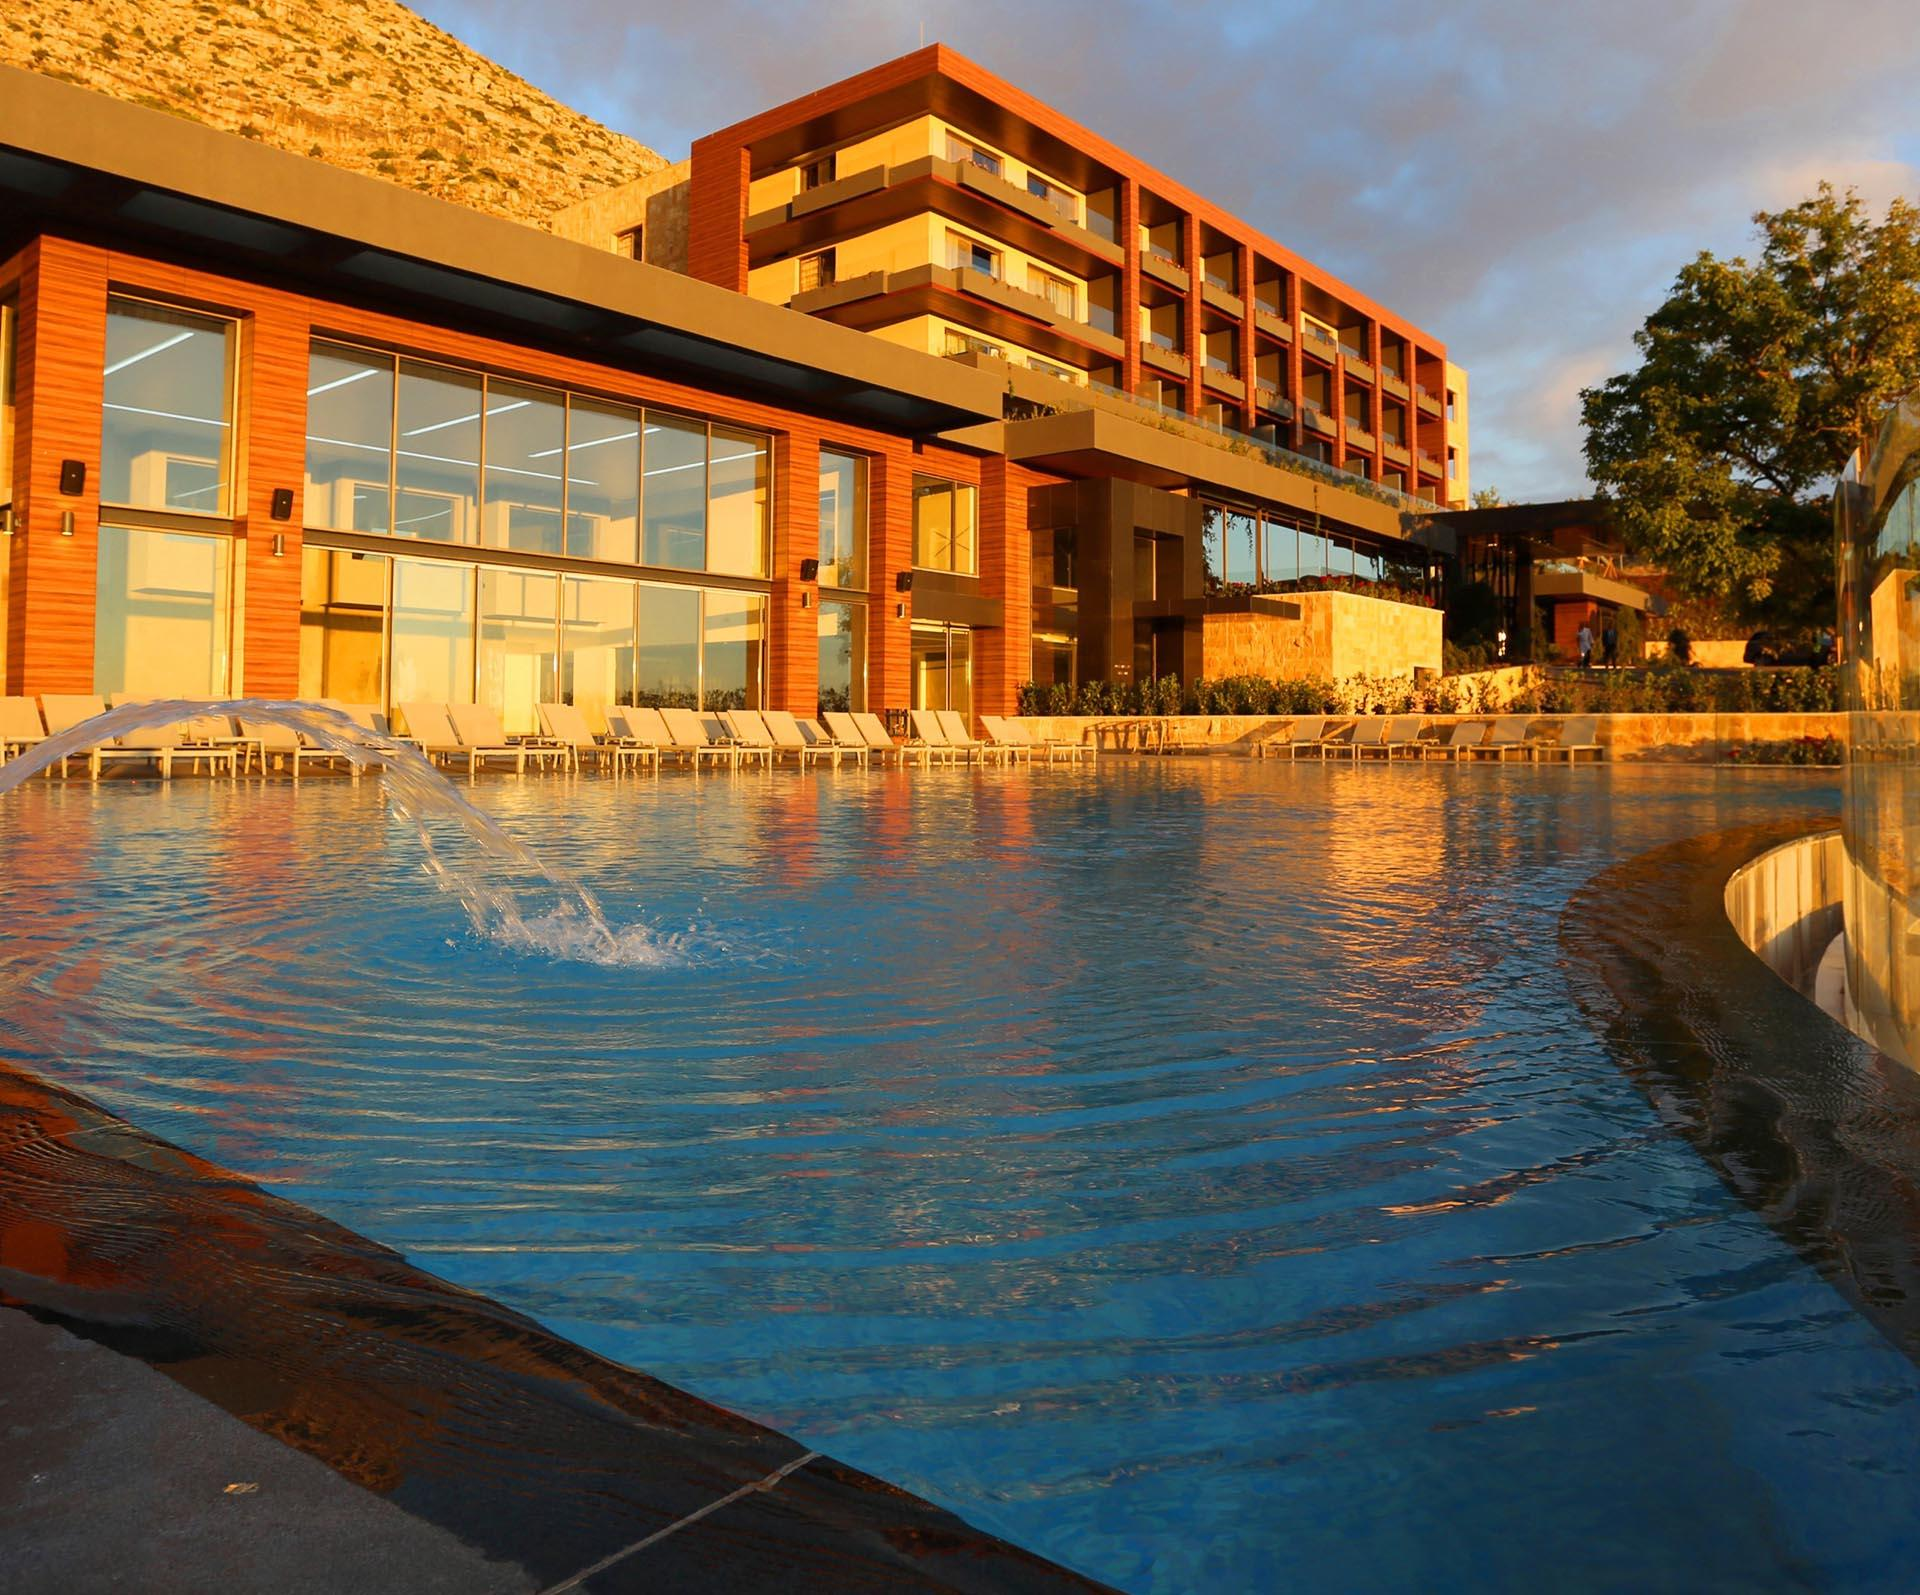 Pool at Mist Hotel and Spa